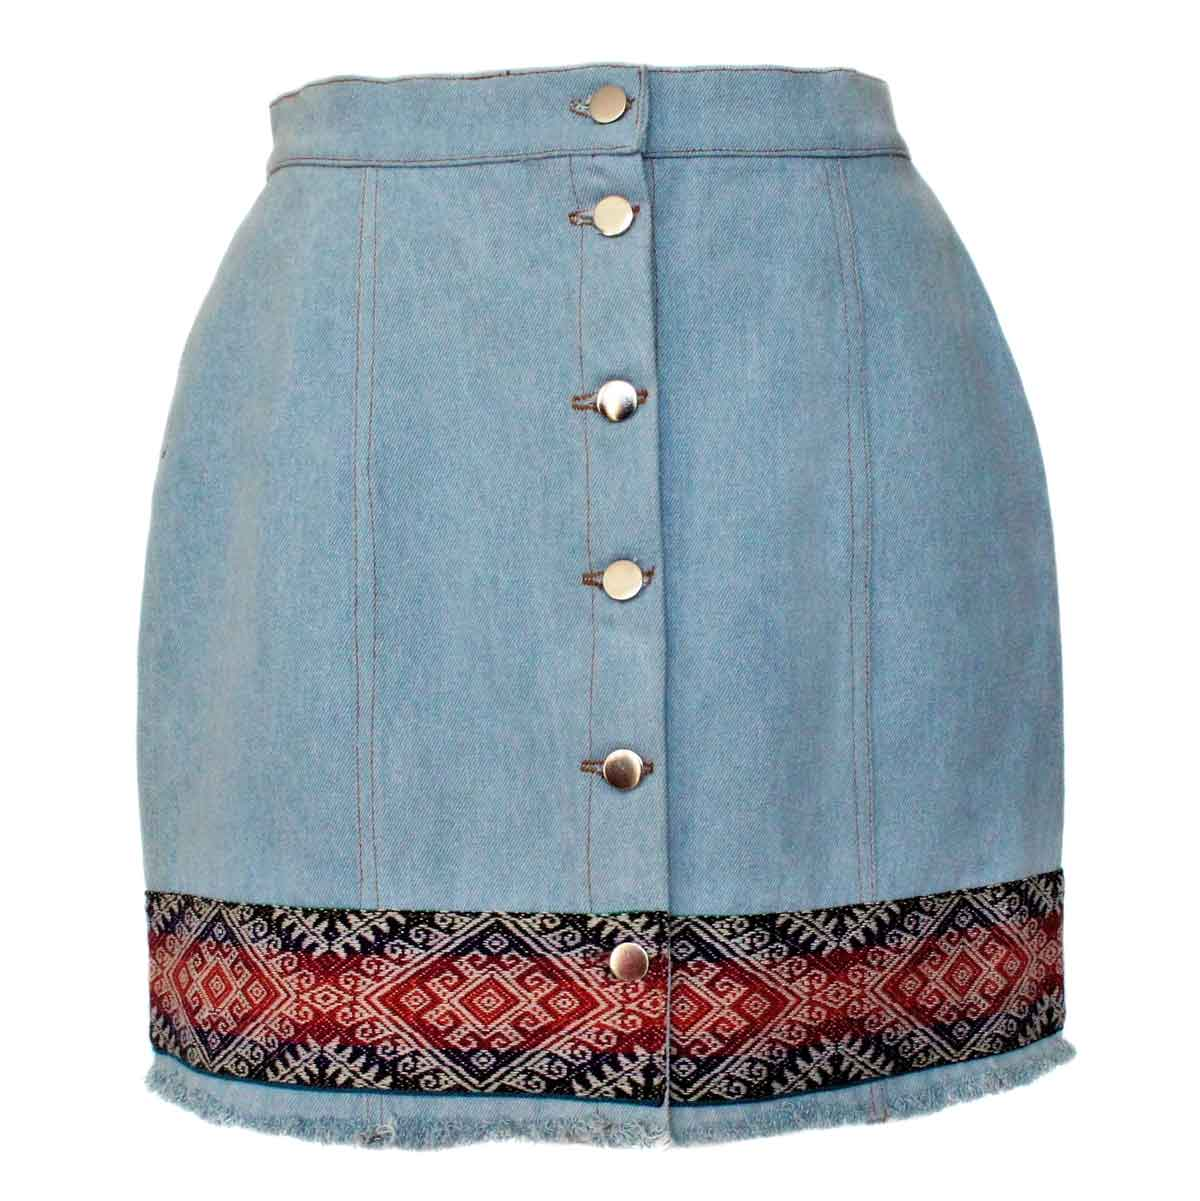 Inka-Products-Mini-jupe Femme Denim Mochica-Tissu Traditionnel Andin Orange Foncé et Violet